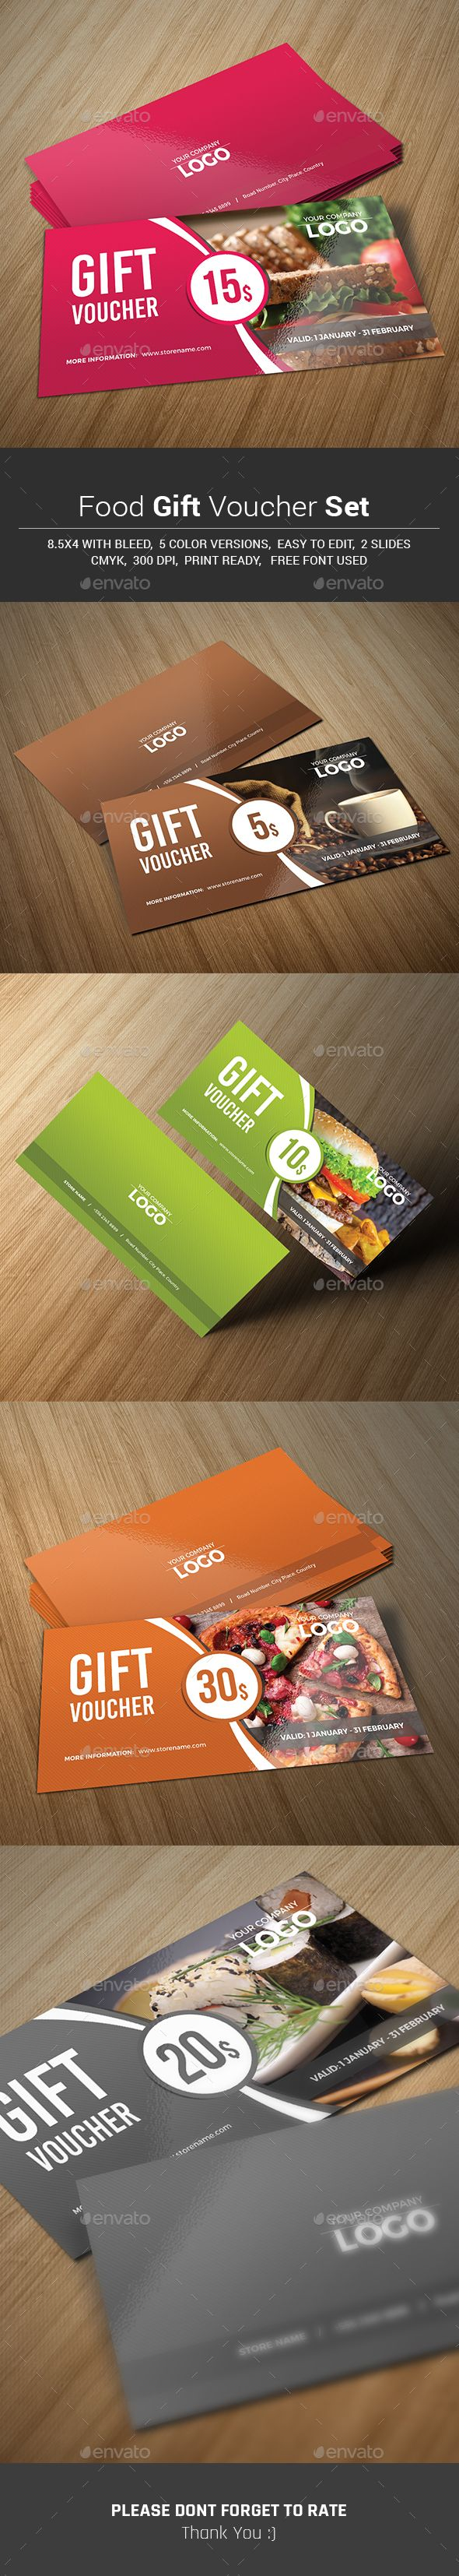 26 best Gift Voucher Design images on Pinterest